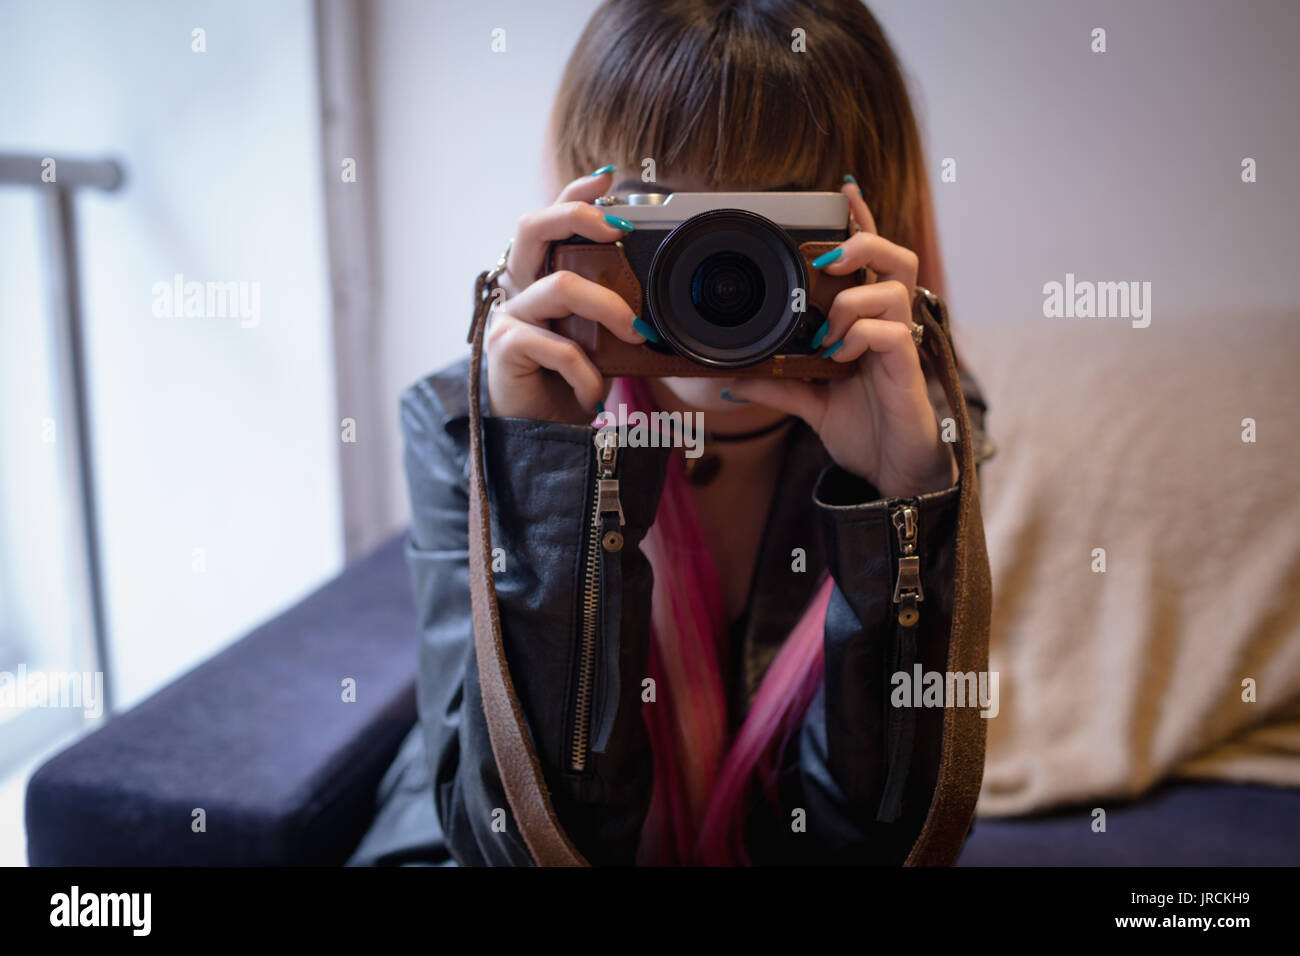 Attractive woman taking photo from digital camera in cafe - Stock Image